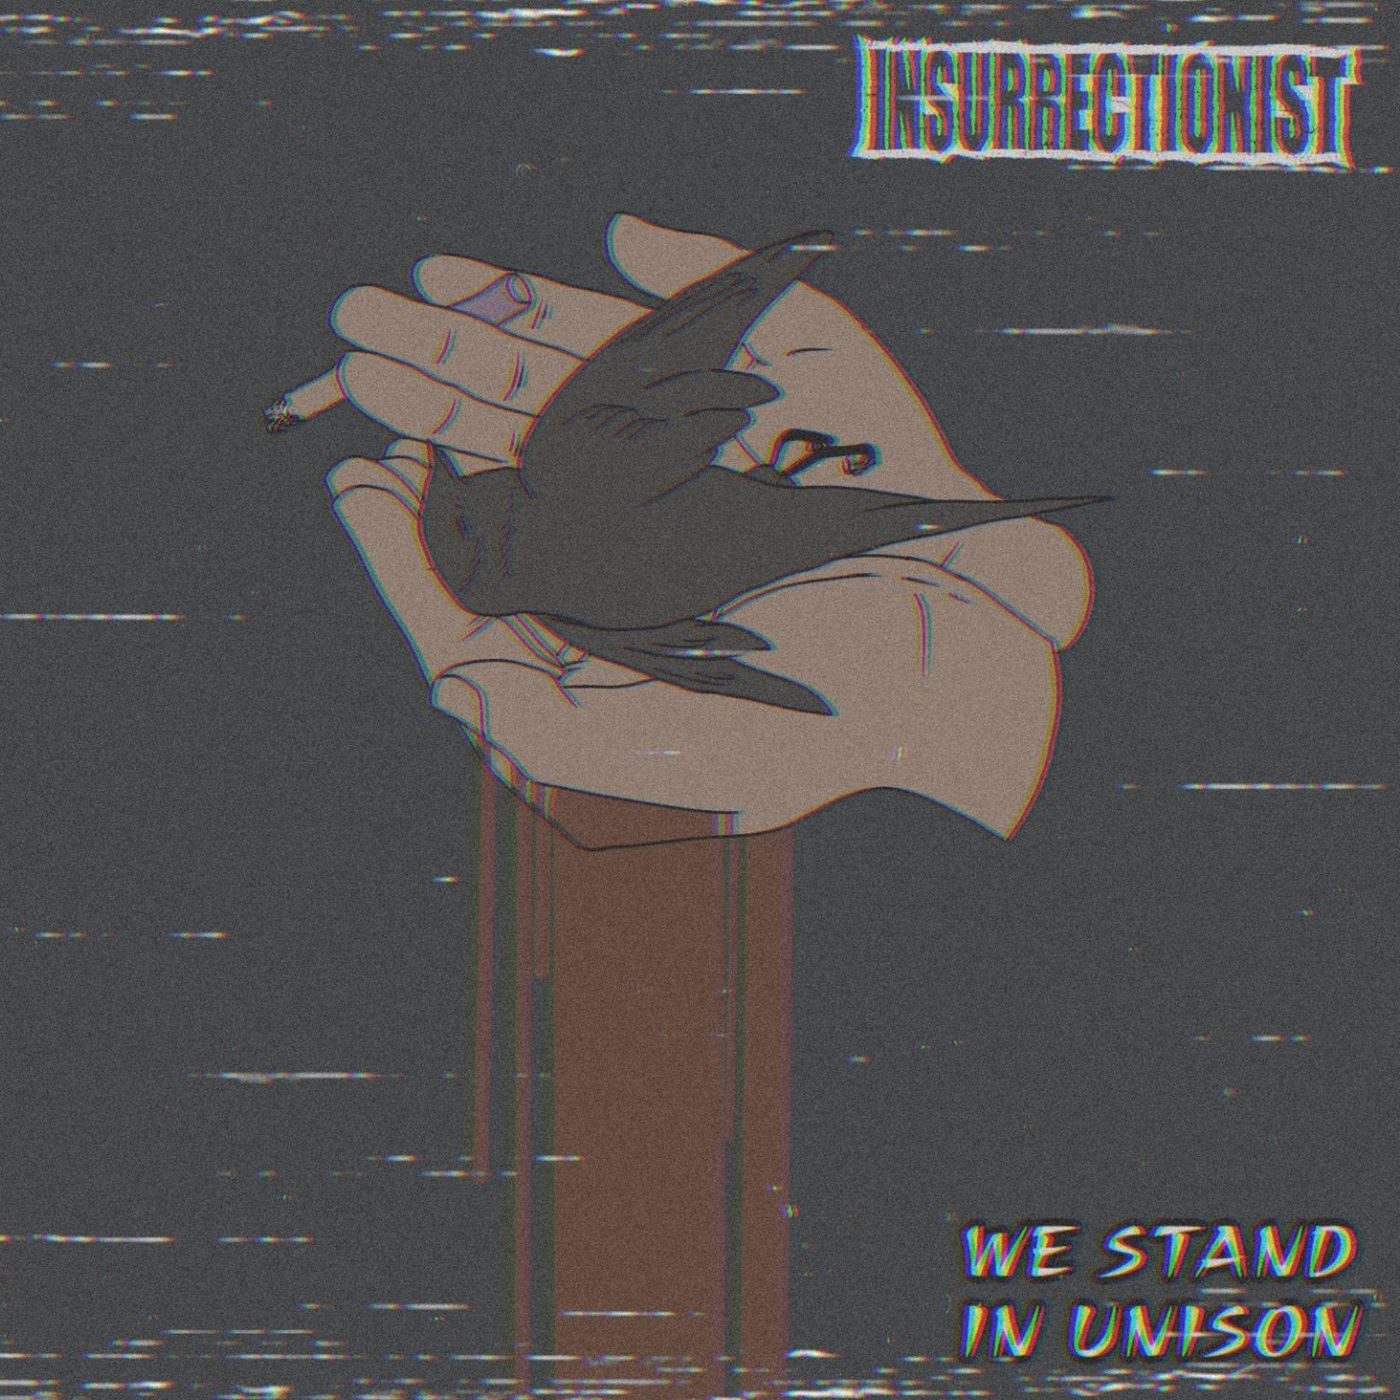 Insurrectionist - We Stand in Unison (2020)